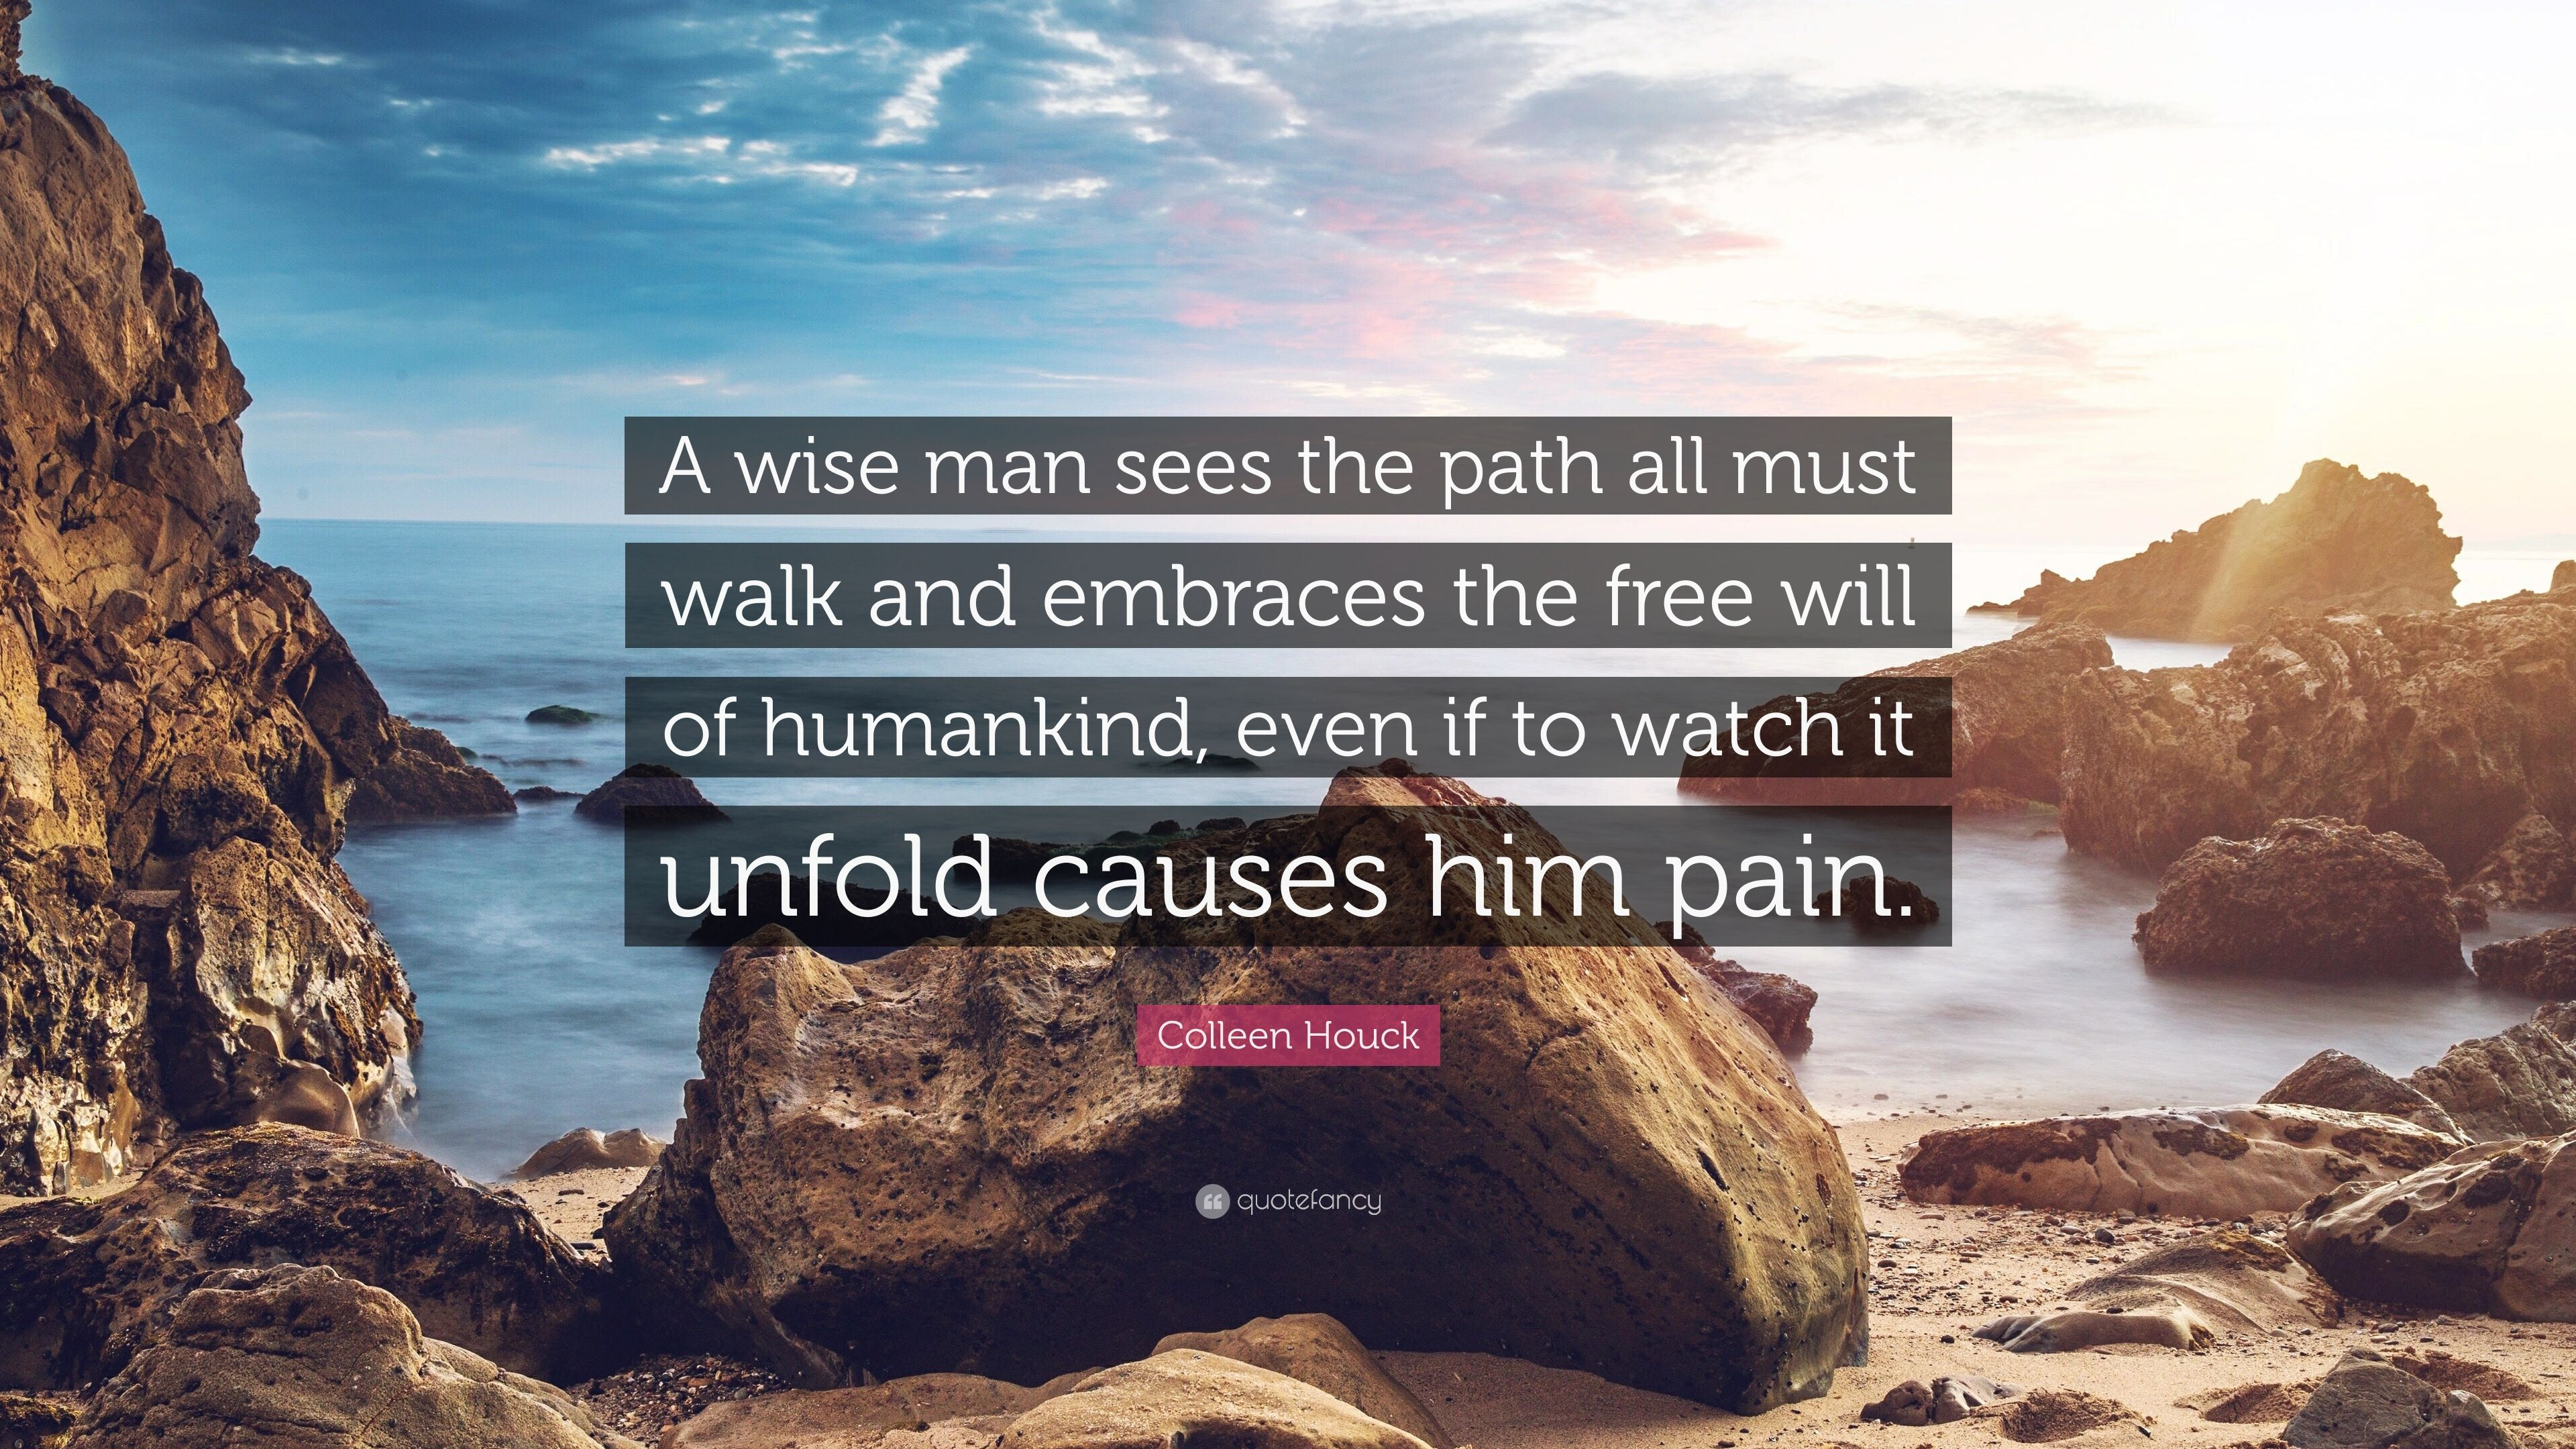 Colleen Houck Quote: U201cA Wise Man Sees The Path All Must Walk And Embraces